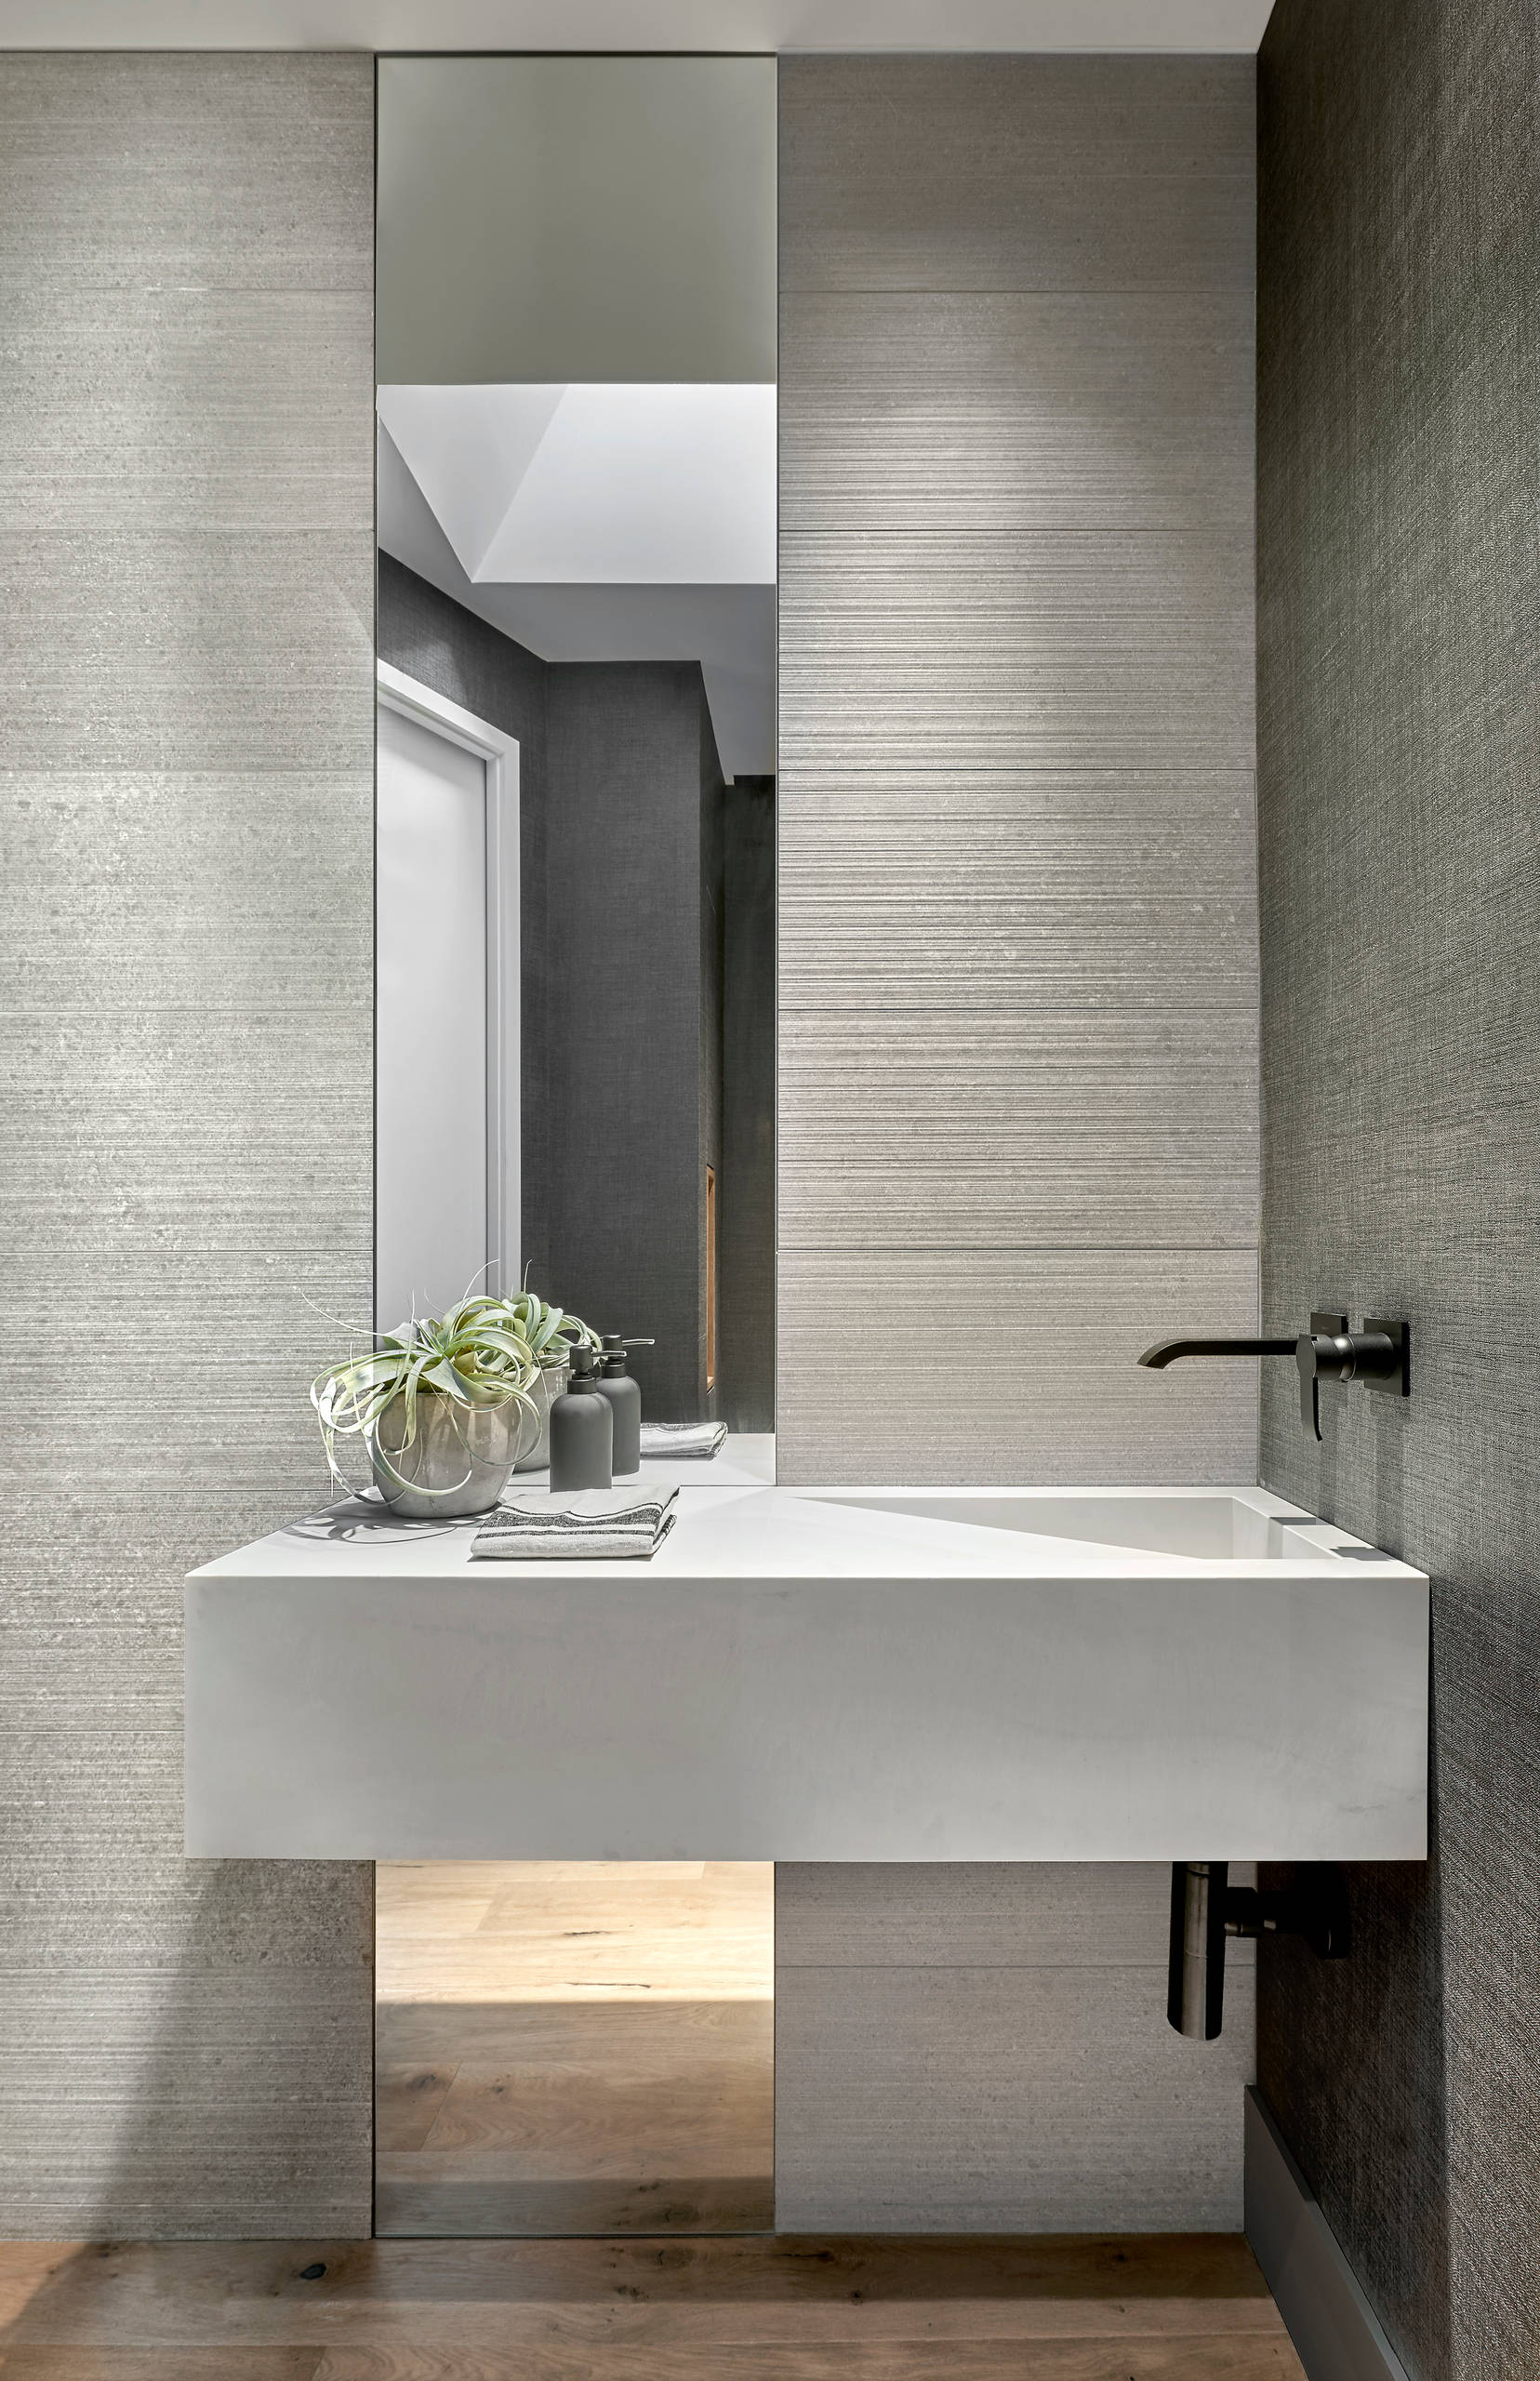 75 Beautiful Modern Powder Room Pictures Ideas December 2020 Houzz